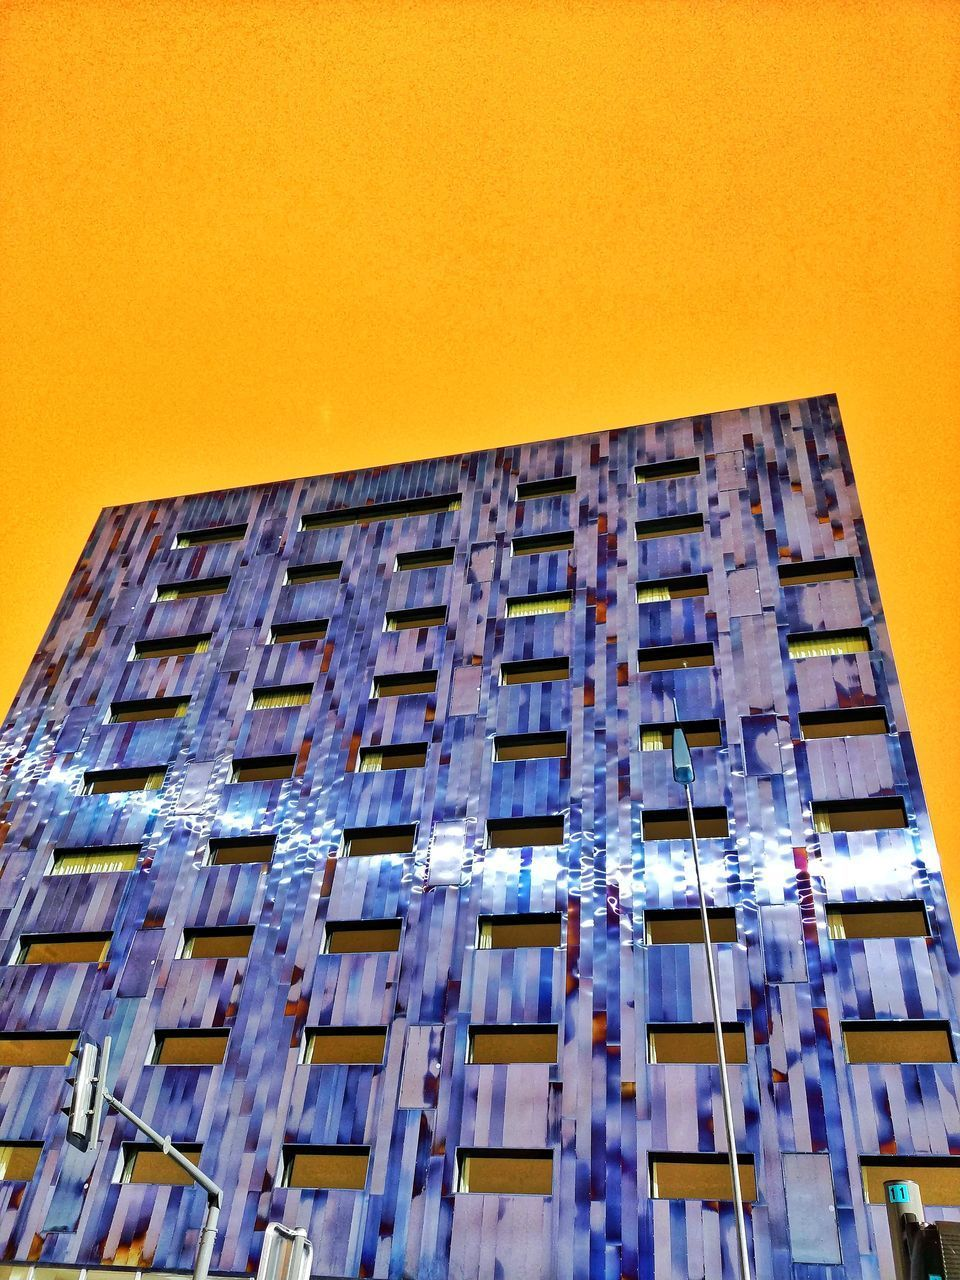 building exterior, architecture, built structure, low angle view, sky, window, no people, building, clear sky, sunset, city, yellow, nature, outdoors, copy space, orange color, blue, day, modern, residential district, apartment